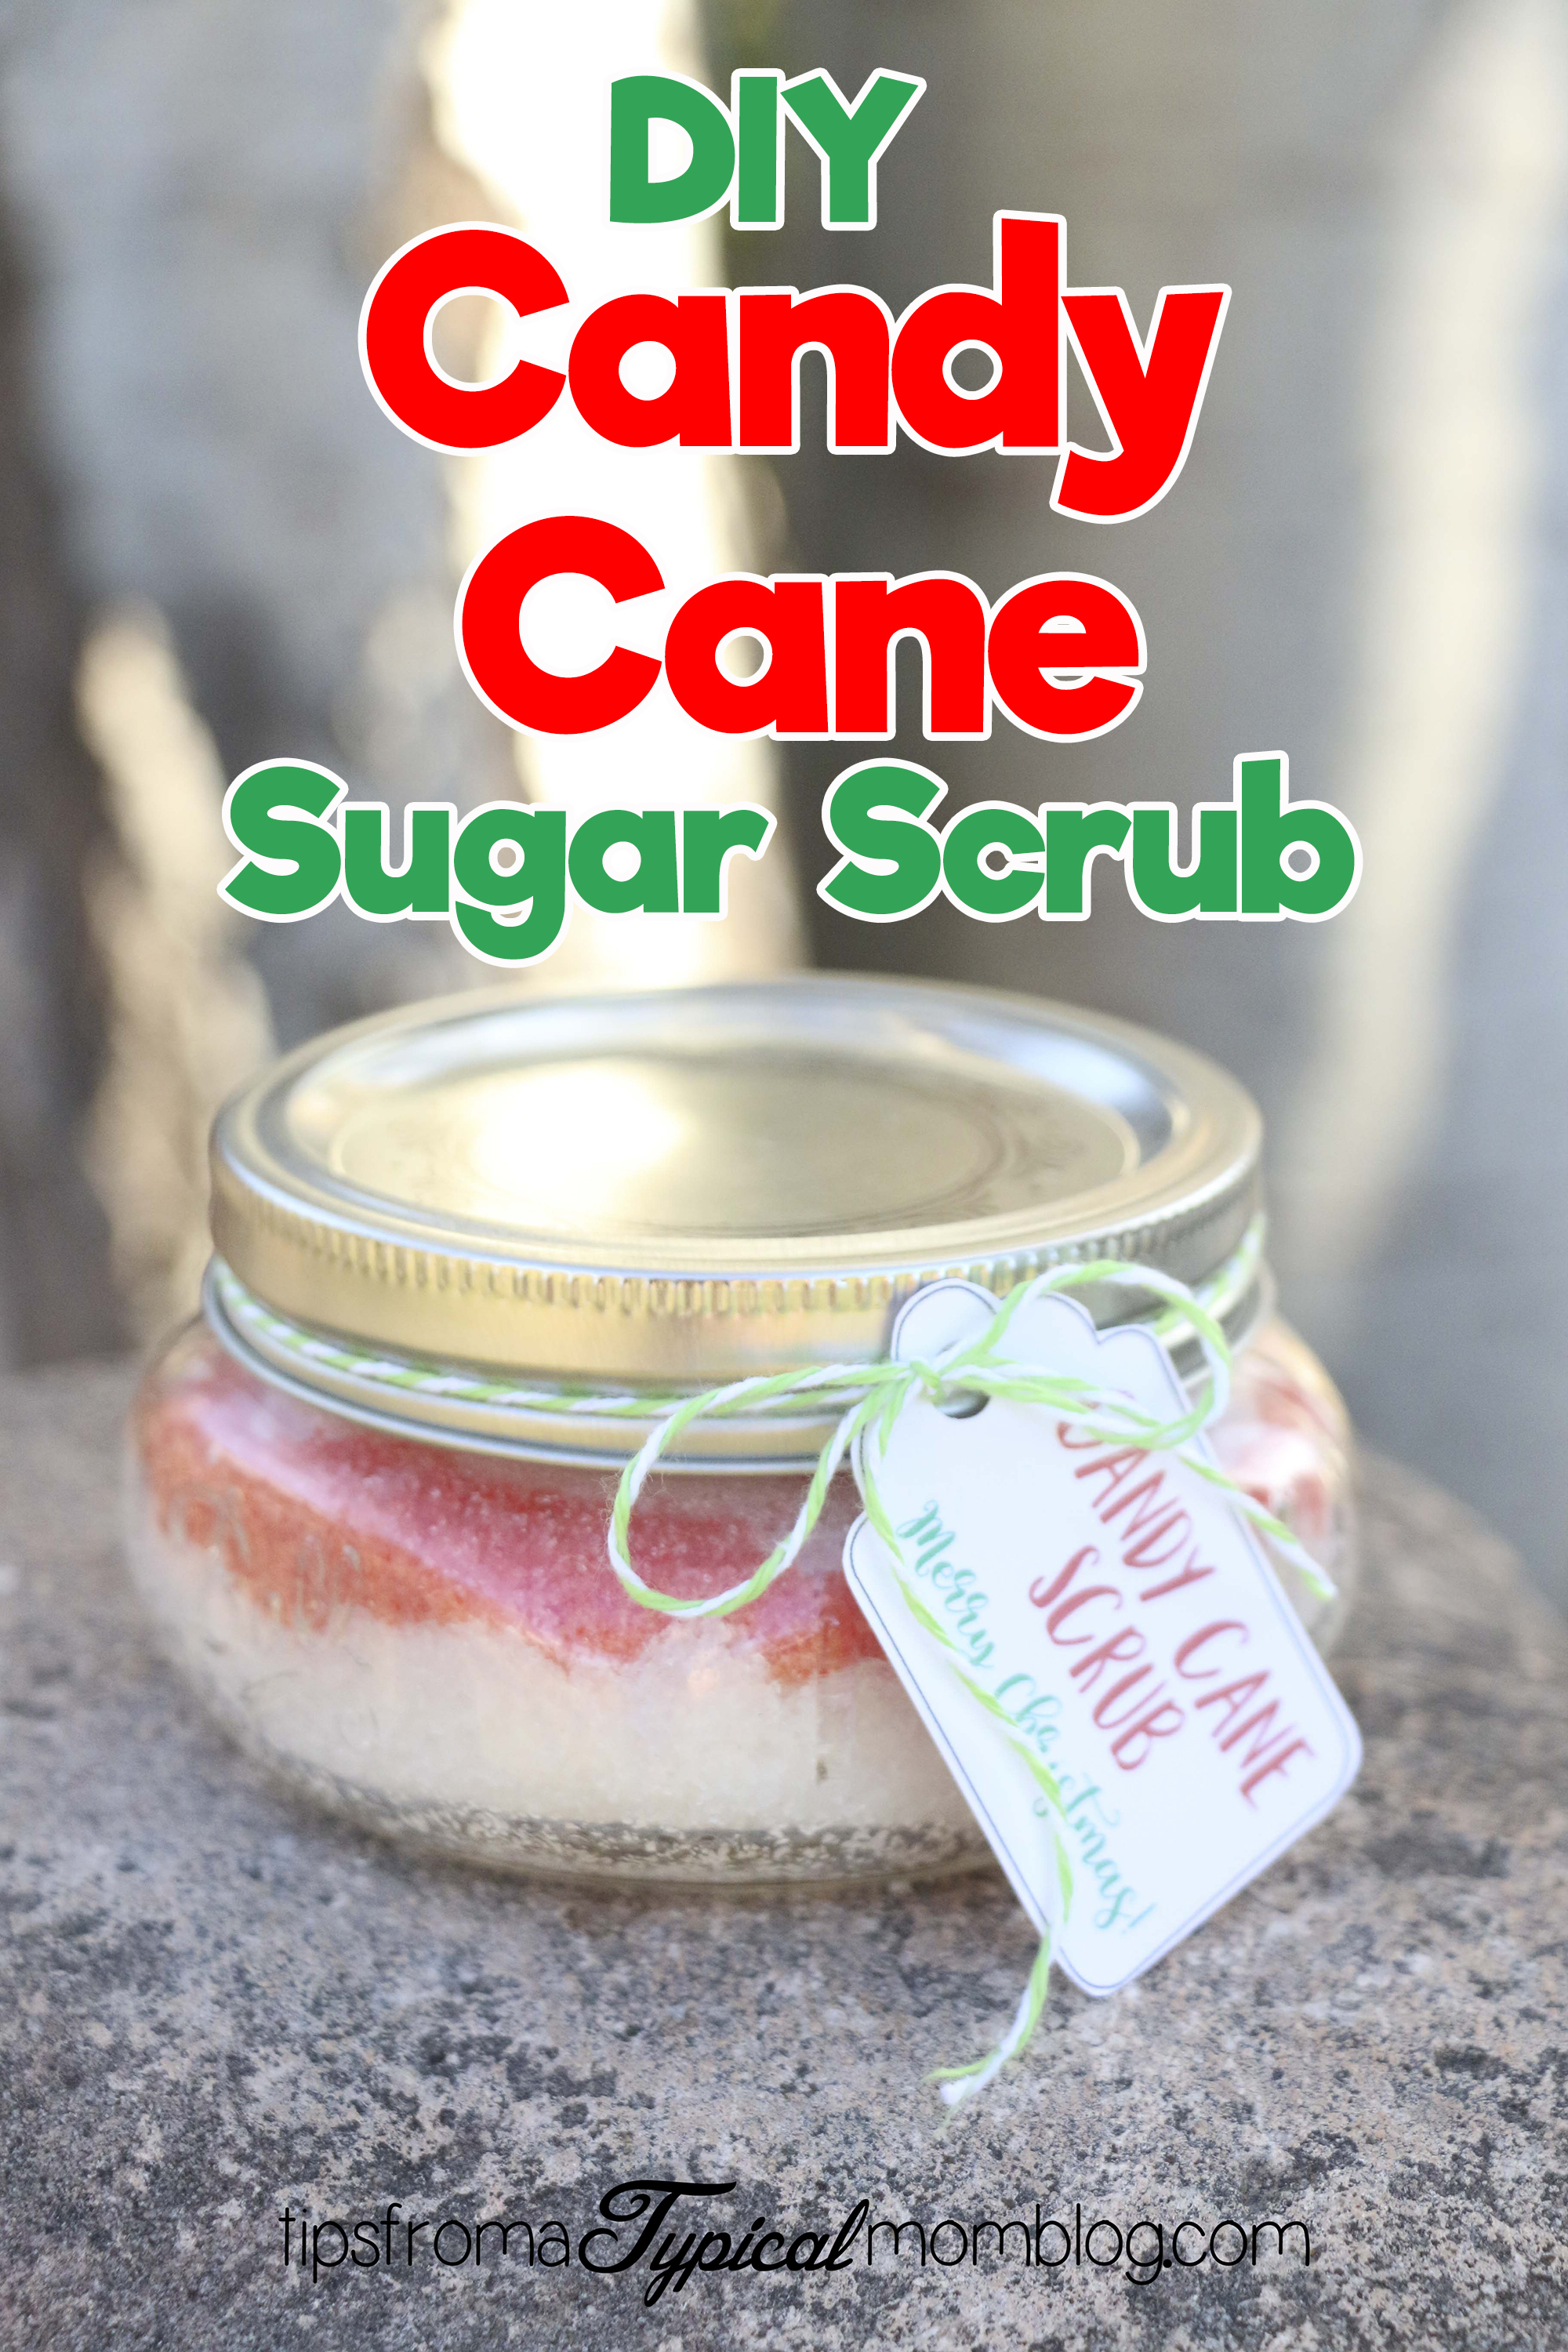 Diy Candy Cane Sugar Scrub Christmas Gift Tips From A Typical Mom